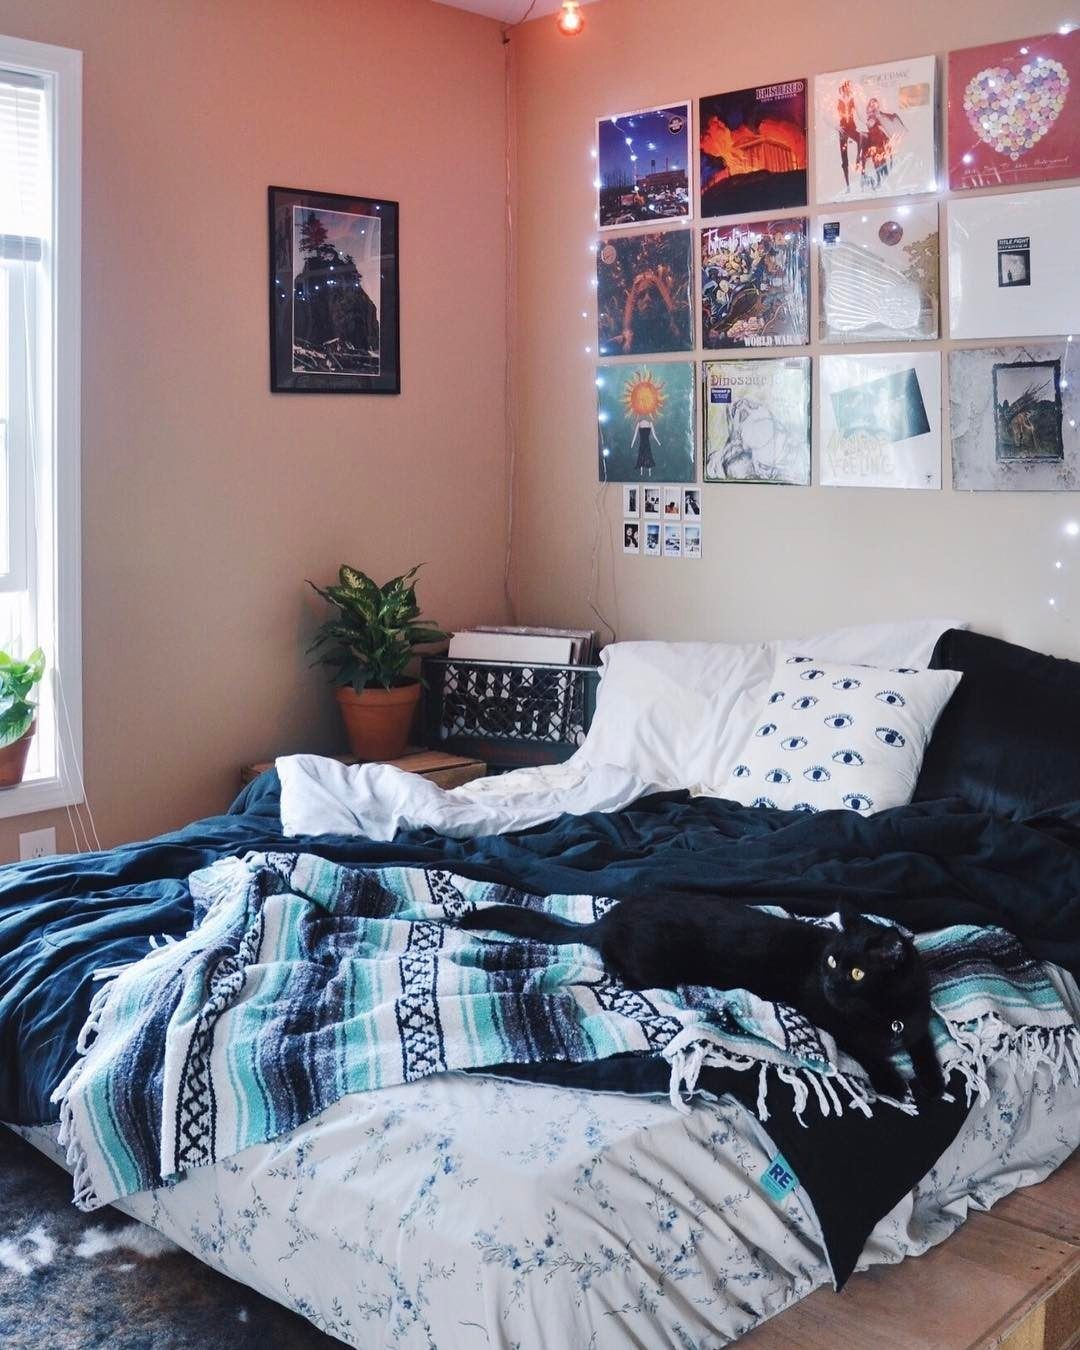 urban outfitters carolinas uocarolinas instagram photos and videos bedroom comfy. Black Bedroom Furniture Sets. Home Design Ideas